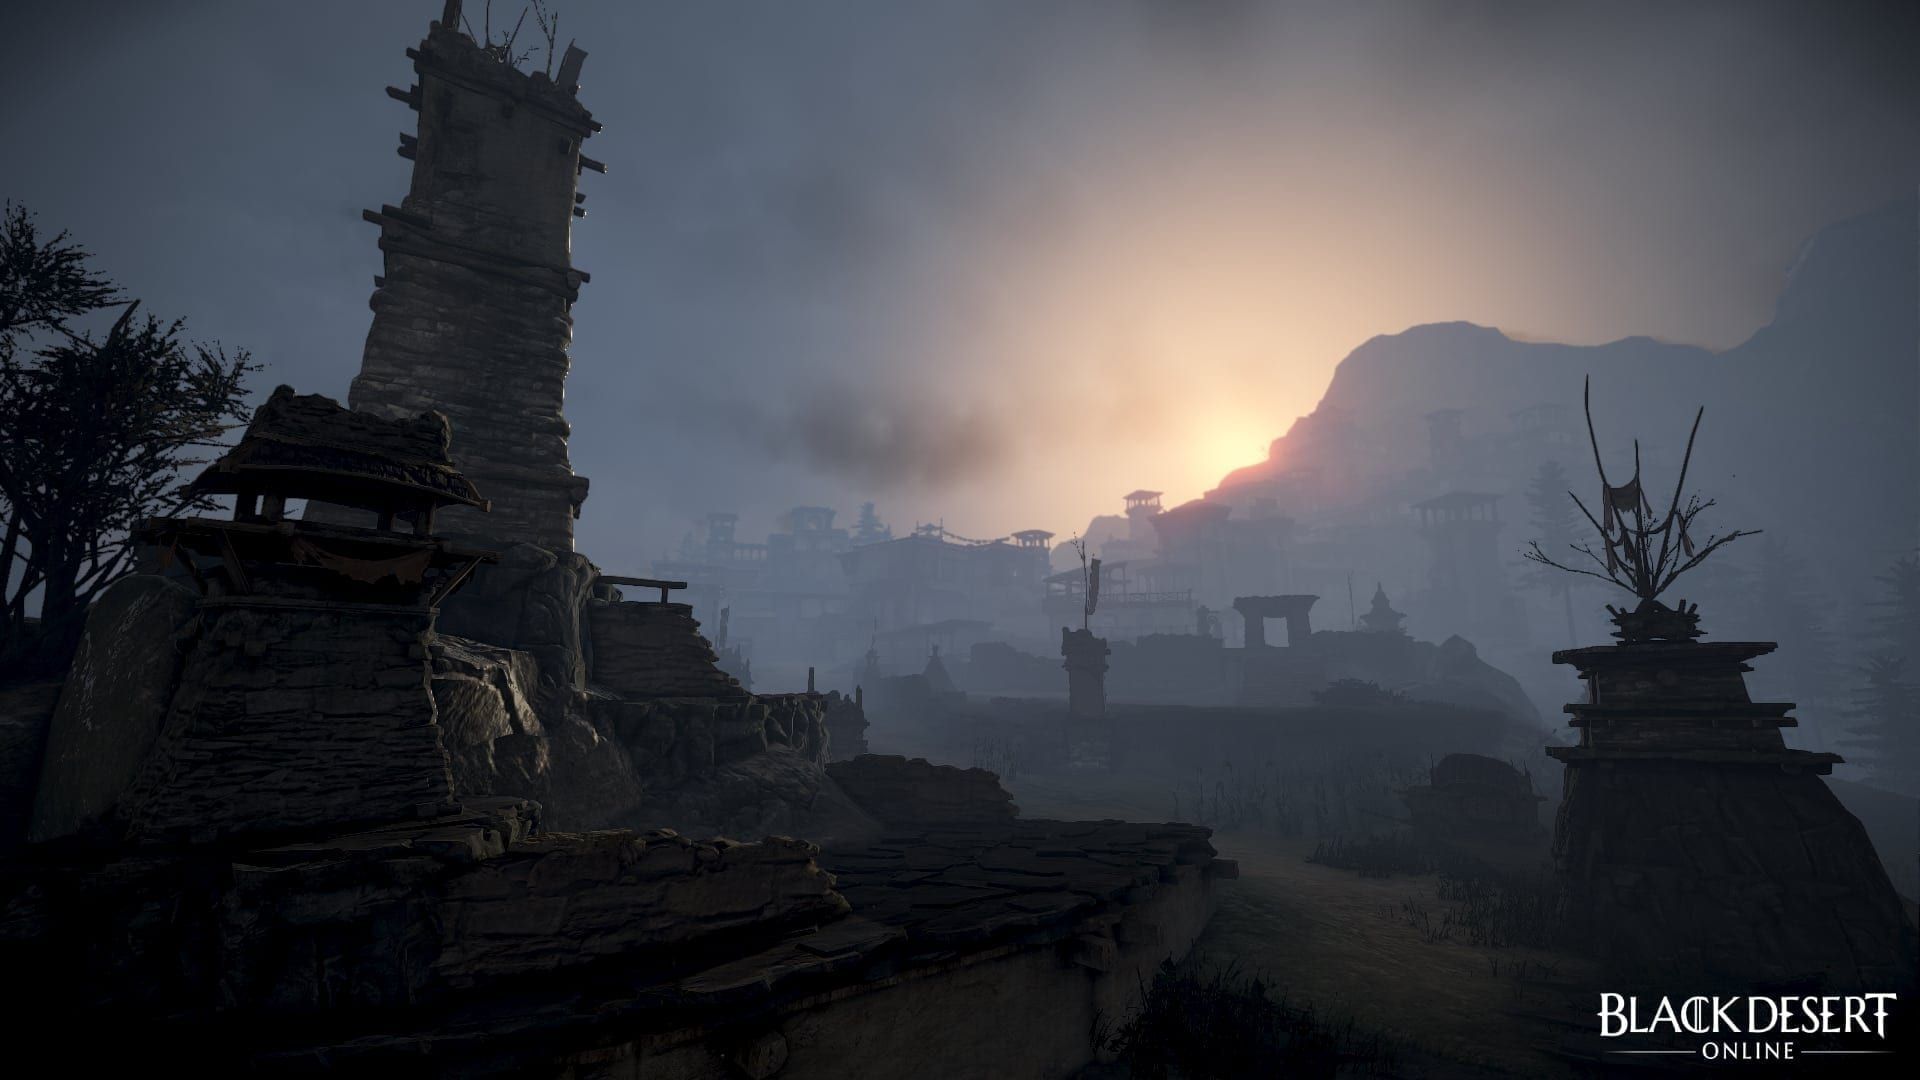 Black desert online major game improvements and new region conquest war changes gumiabroncs Gallery